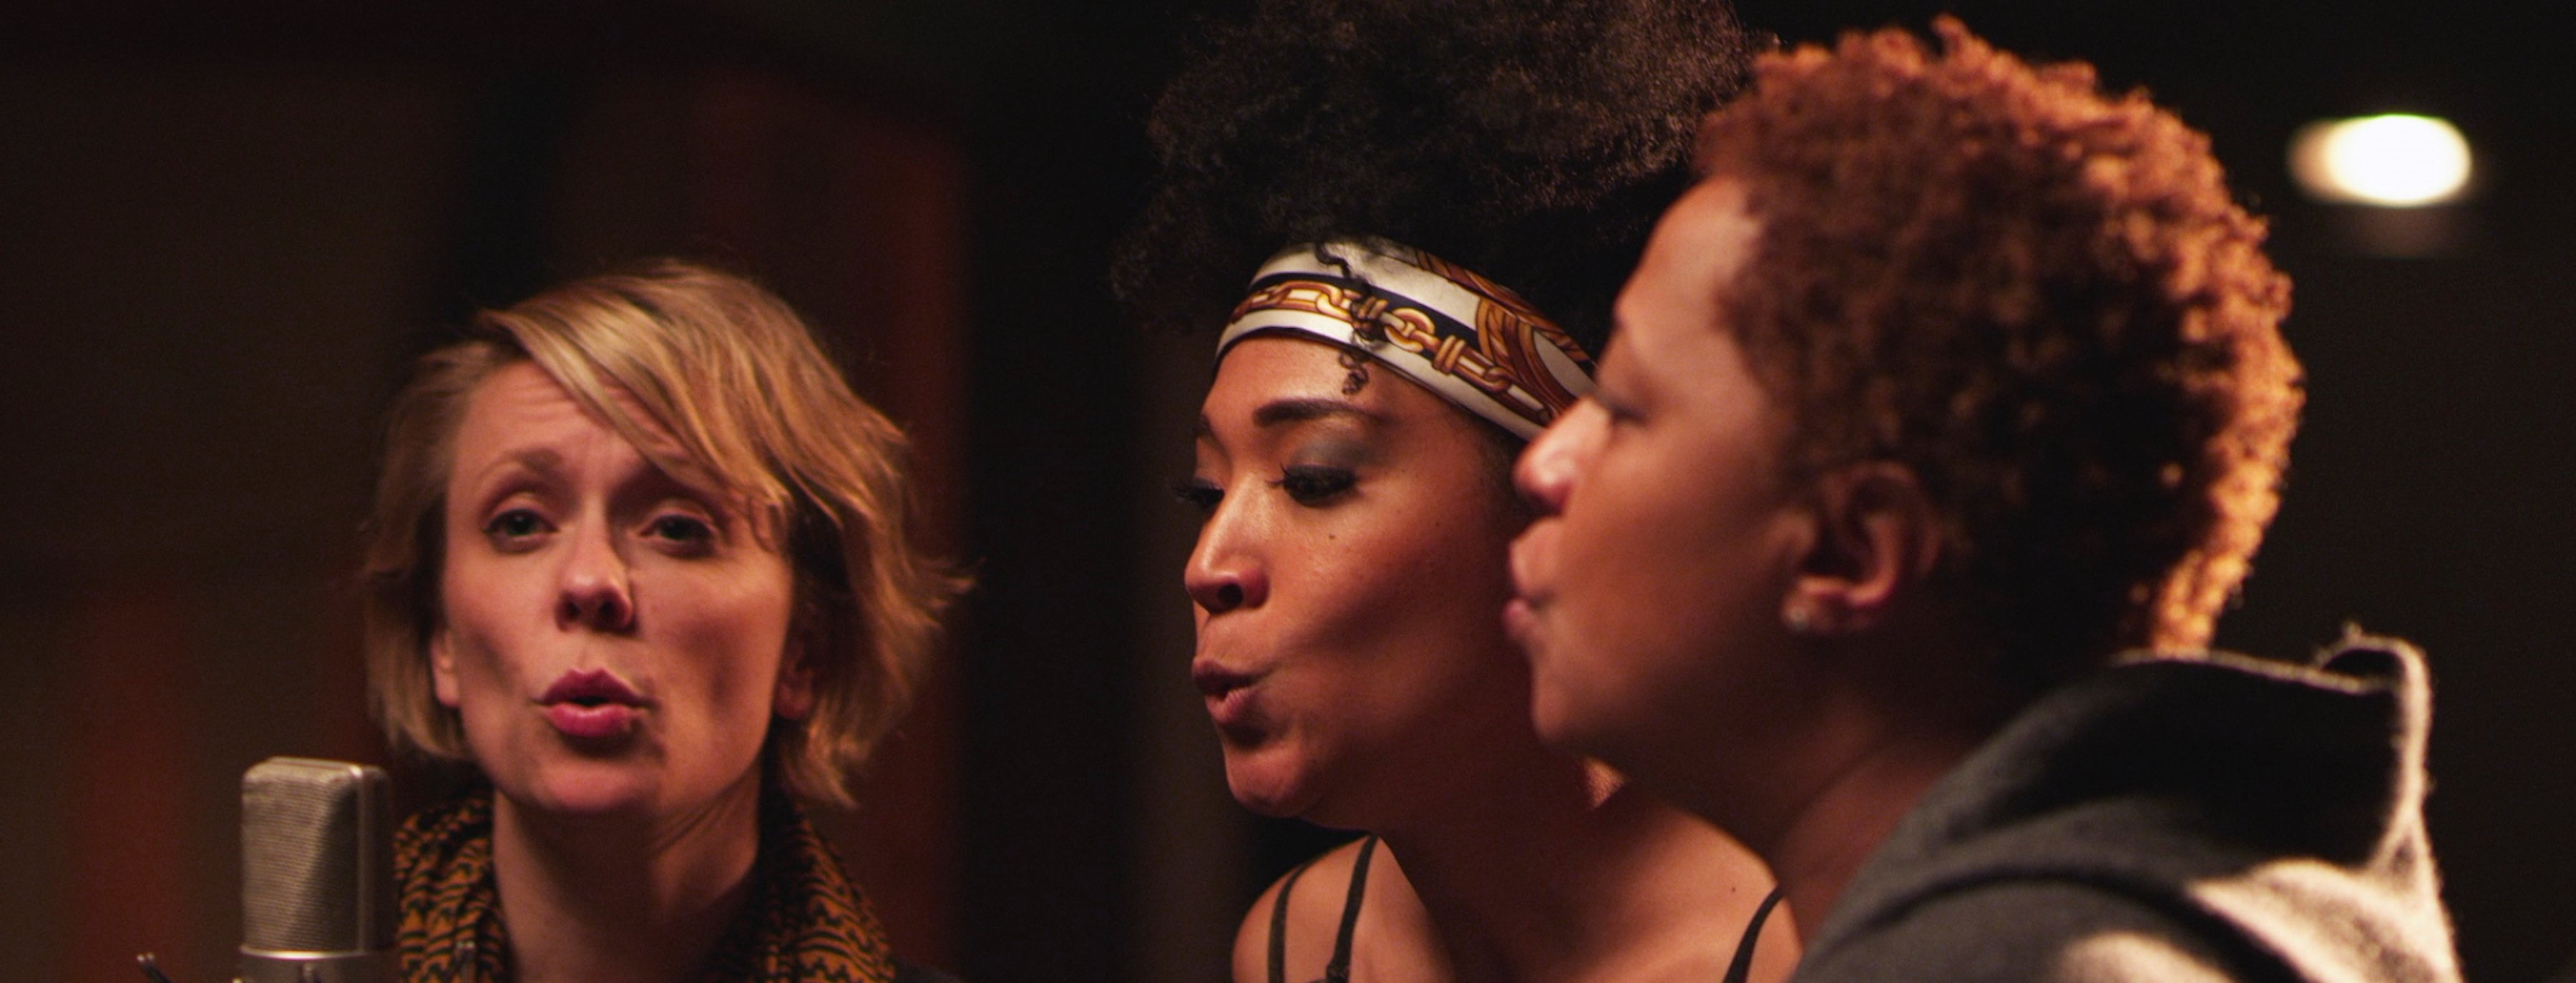 Film: 20 Feet From Stardom feature image